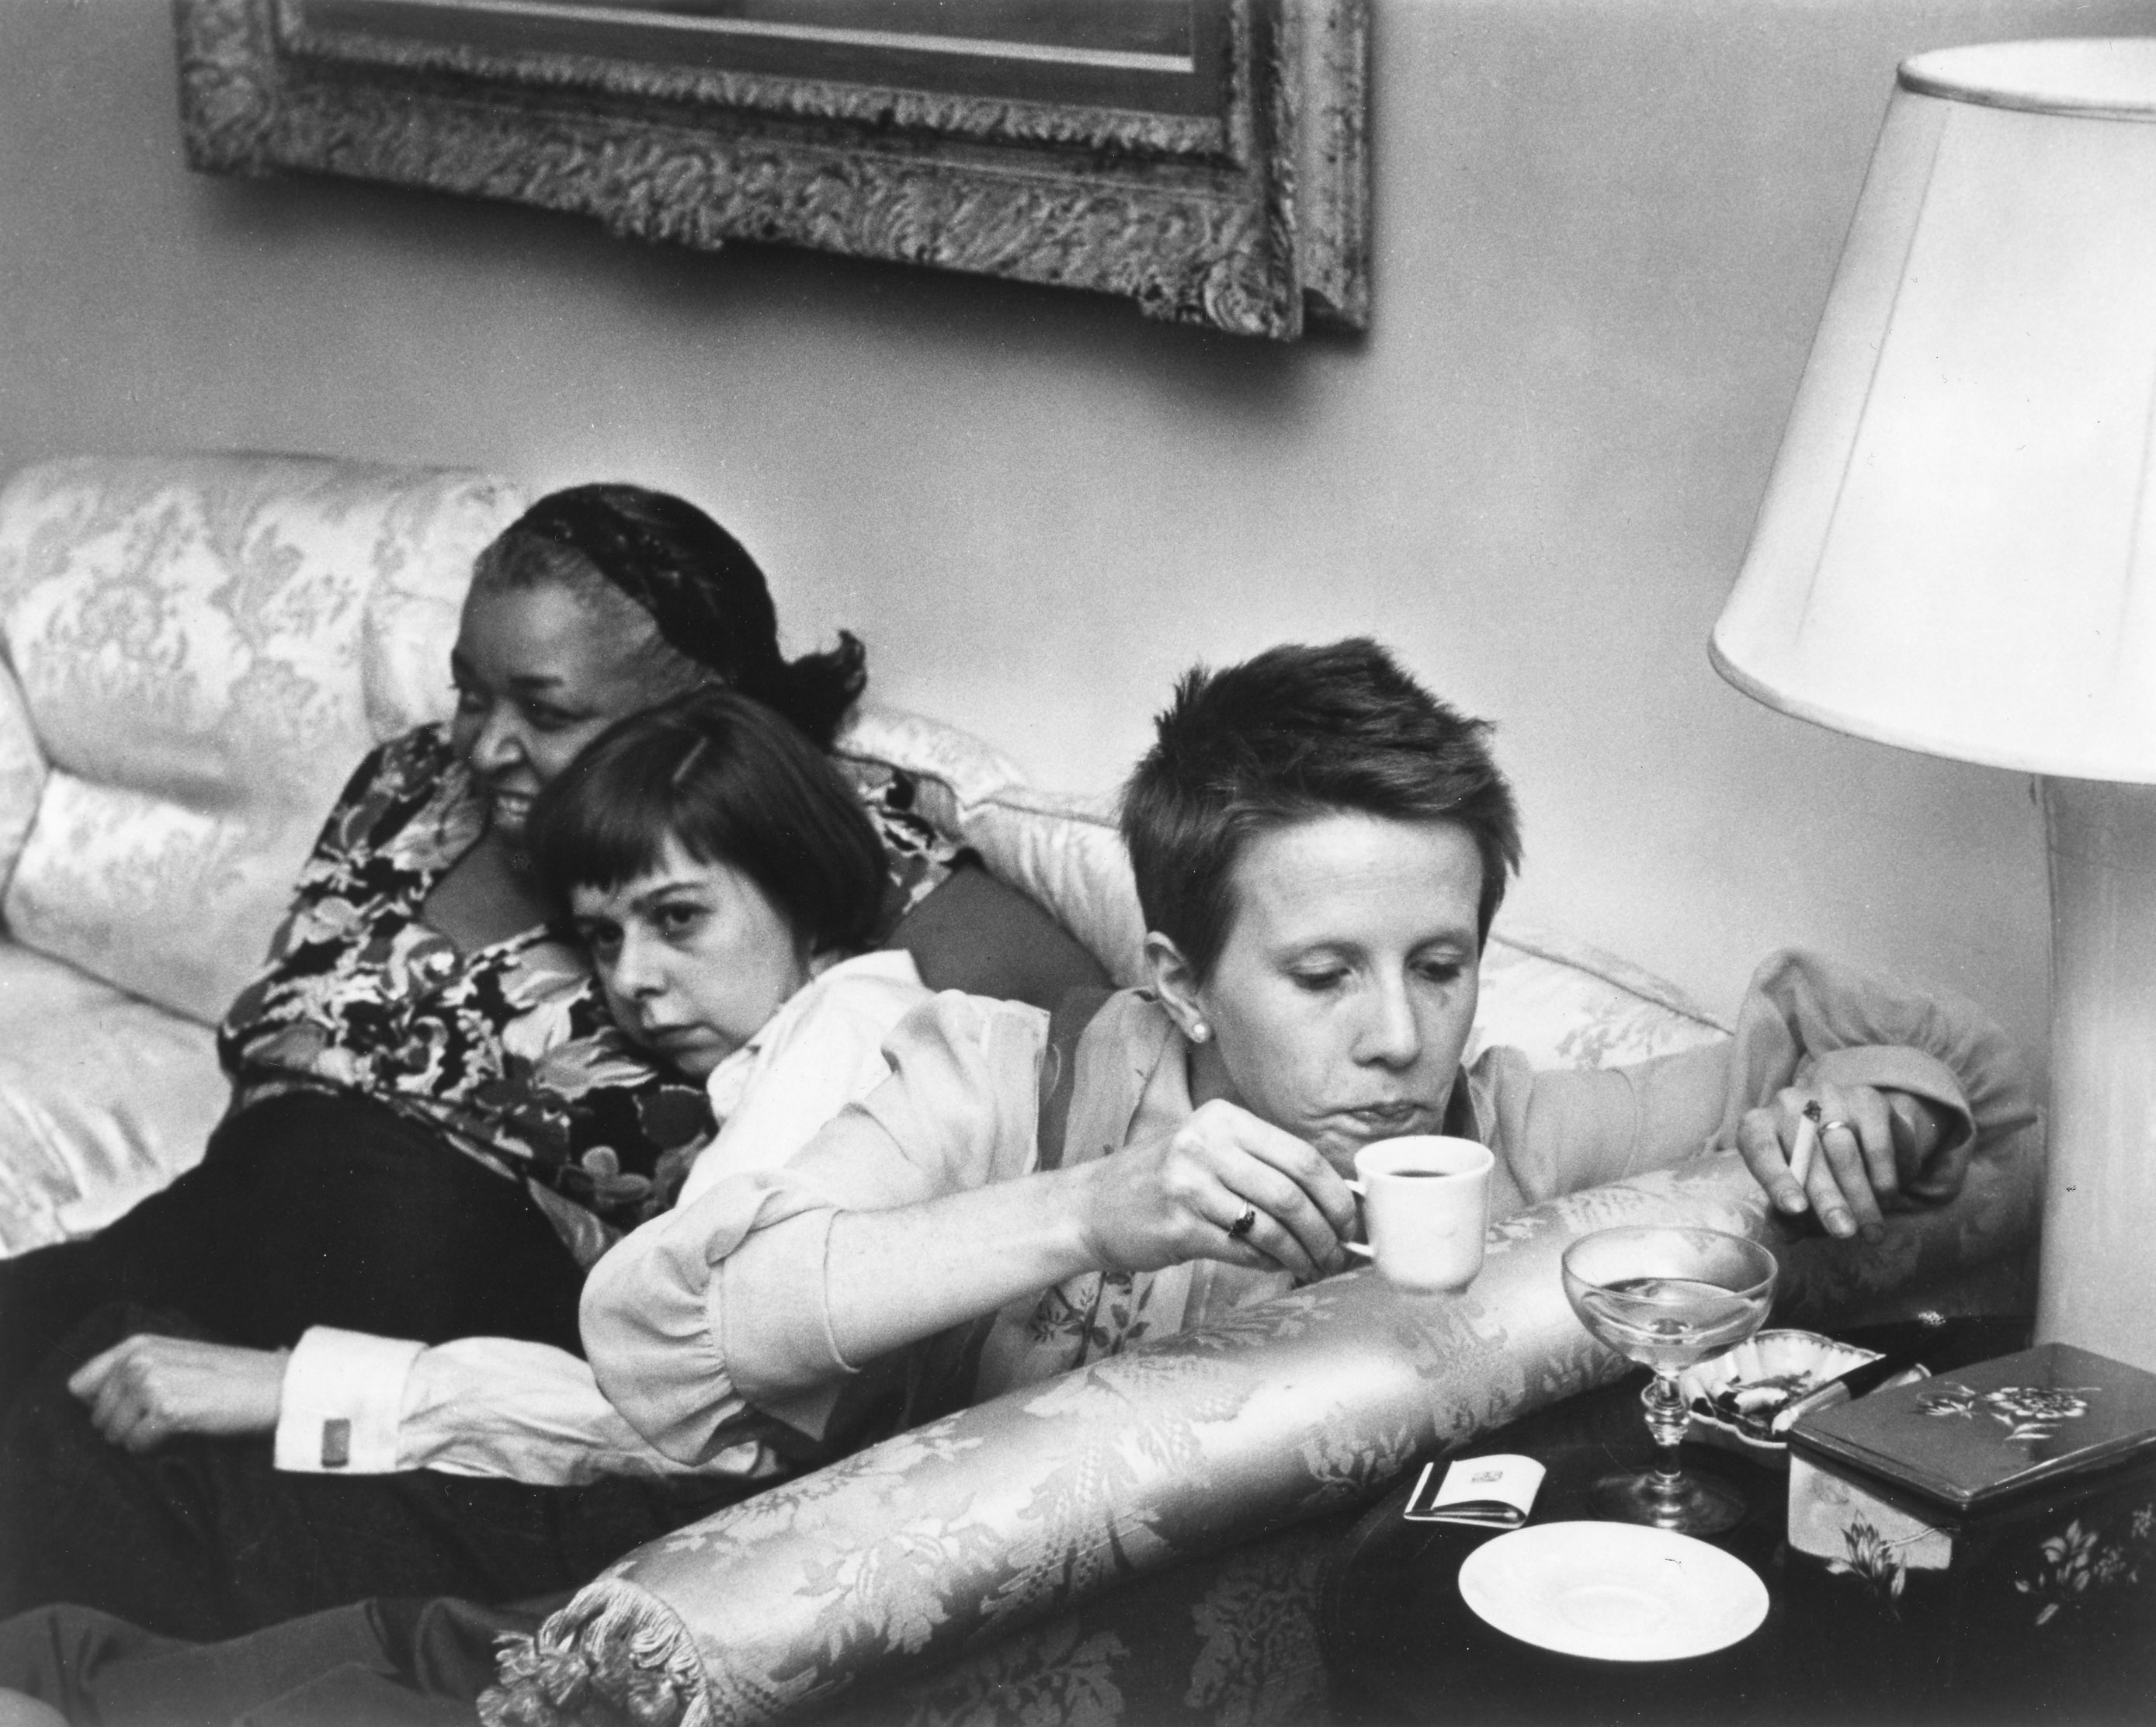 Three women sit on a couch, facing in different directions. At left, a dark-skinned woman faces out, to the left of the camera, and smiles; a light-skinned woman with bobbed dark hair leans on the first woman and gazes down. At right, a light-skinned woman with short hair leans over to lift a cup of tea and cigarette from a side table.